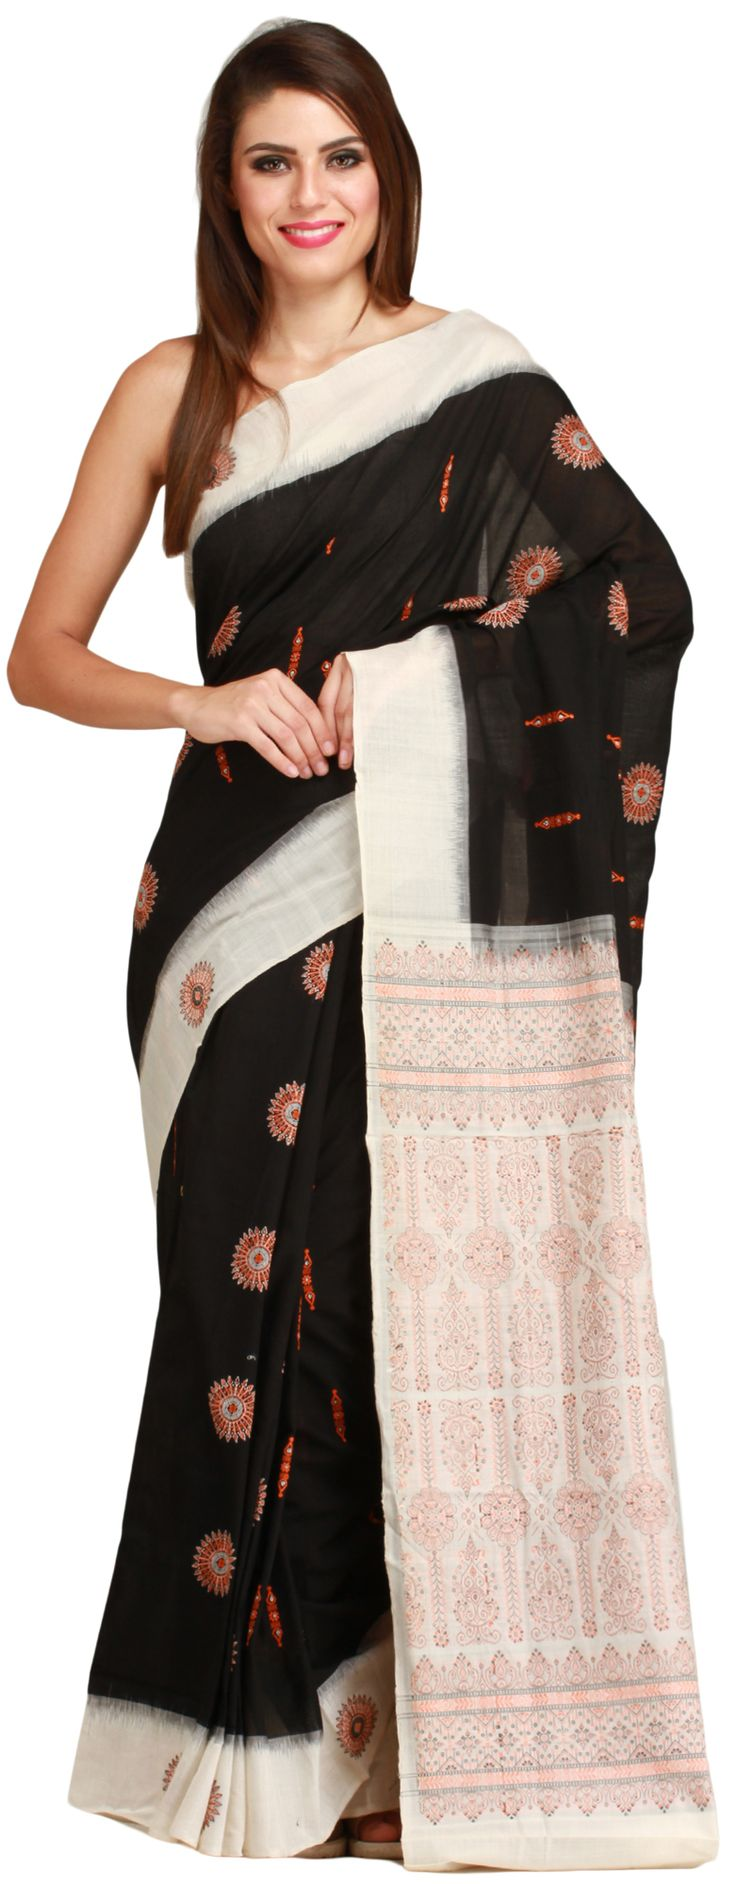 Black and Ivory Bomkai Sari from Orissa with Woven Chakras All-Over